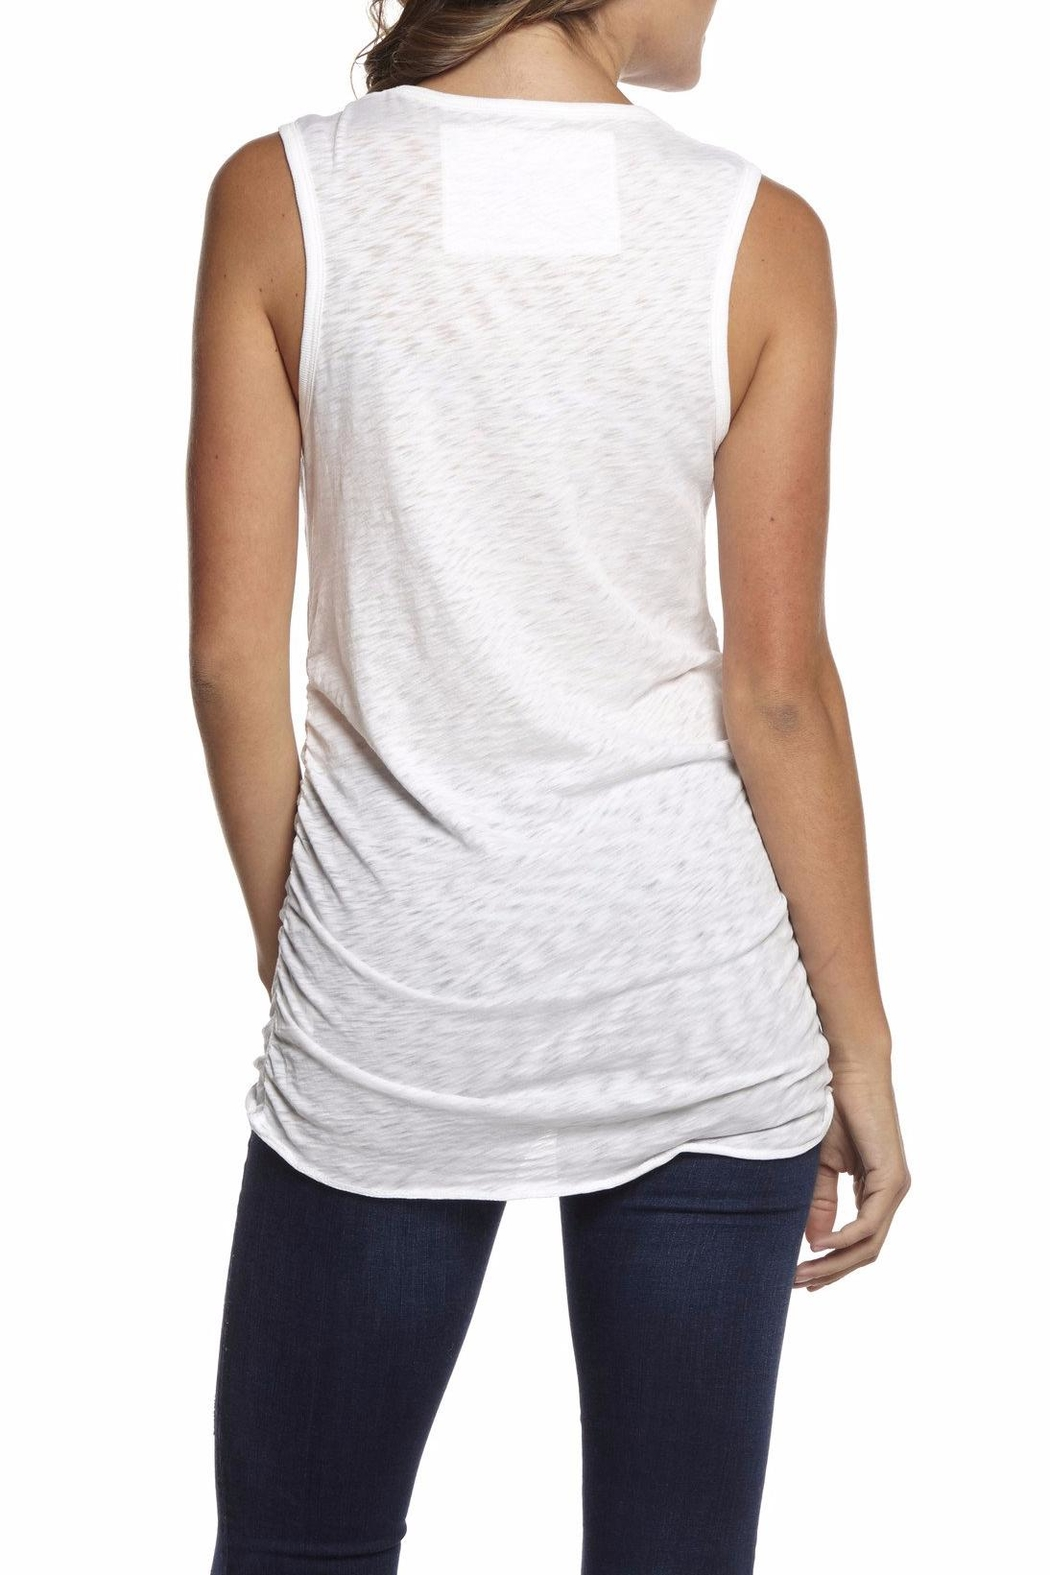 Inner Shine Gathered Side Tank Top - Front Full Image